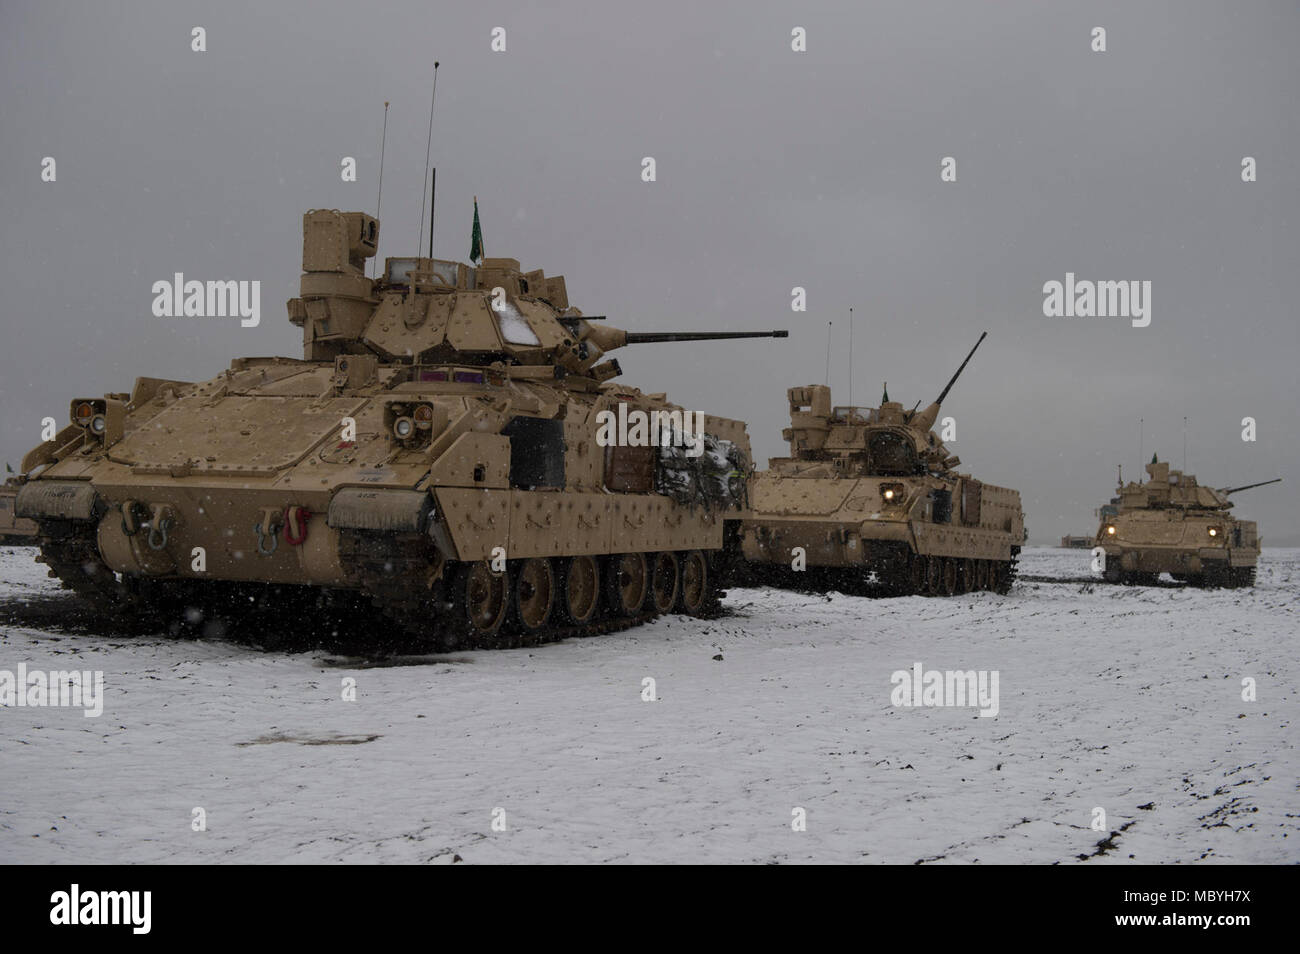 Engineers with the 116th Brigade Engineer Battalion conduct M2A3 Bradley fighting vehicle gunnery qualification on March 27, 2018, Orchard Combat Training Center, south of Boise, Idaho. Combat engineers with the 116th BEB trained through gunnery table XII, evaluating their ability to execute collective platoon-level tasks in a tactical live-fire environment; including integrating dismounted soldiers with their assigned BFV. Stock Photo